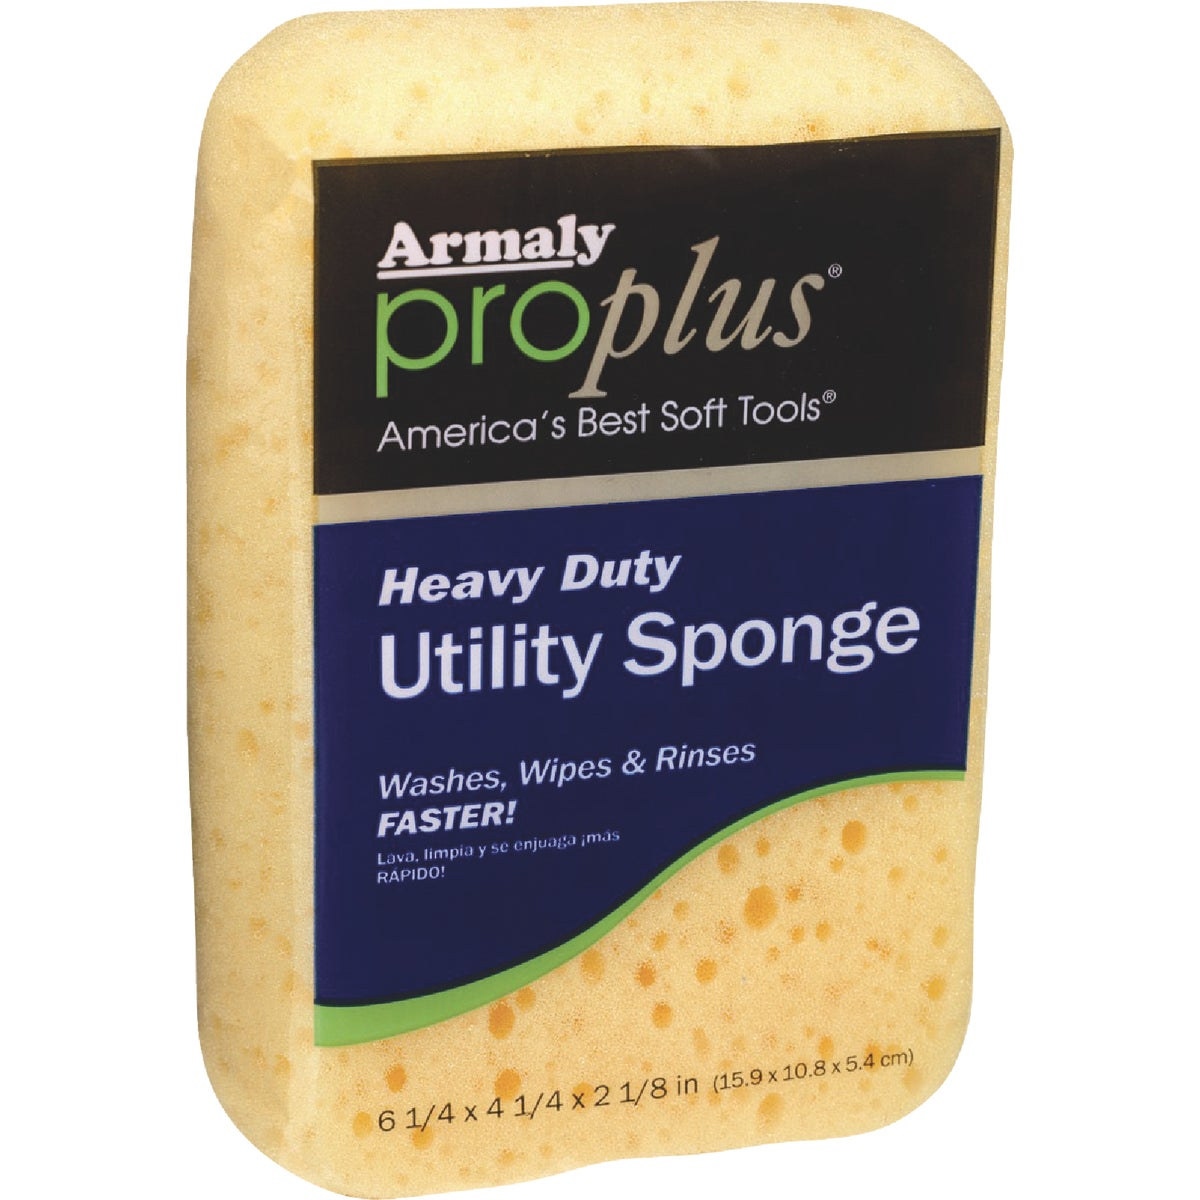 LARGE SPONGE - 00009 by Armaly Brands